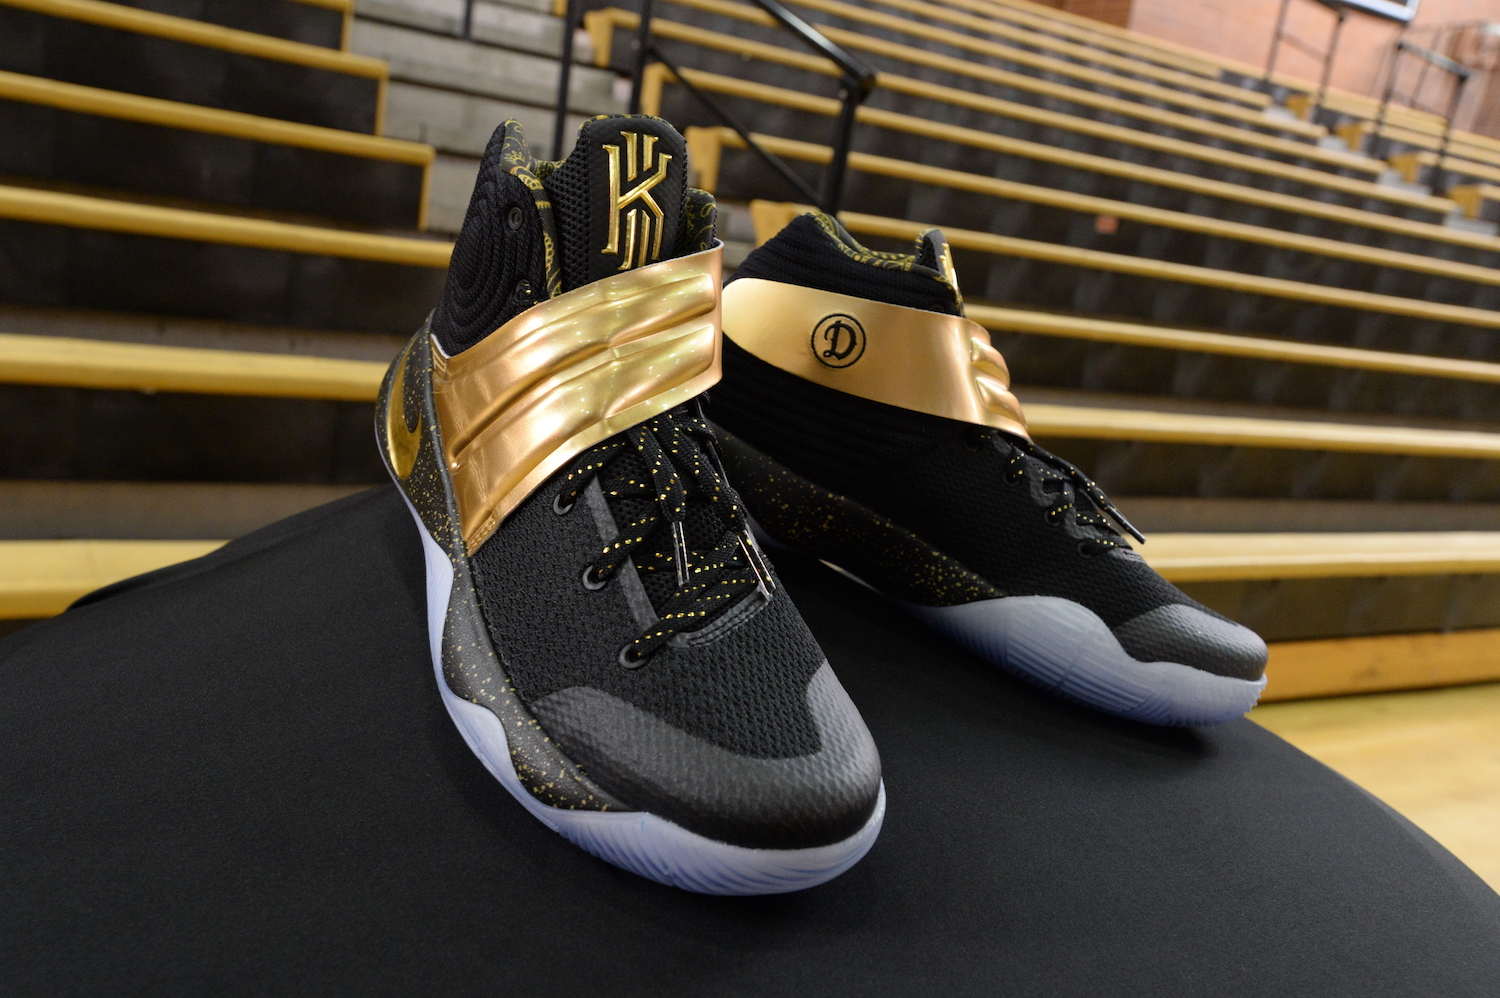 best sneakers 8efc8 befb3 Drew League Champs Get Custom Kyrie 2 NikeiD - WearTesters